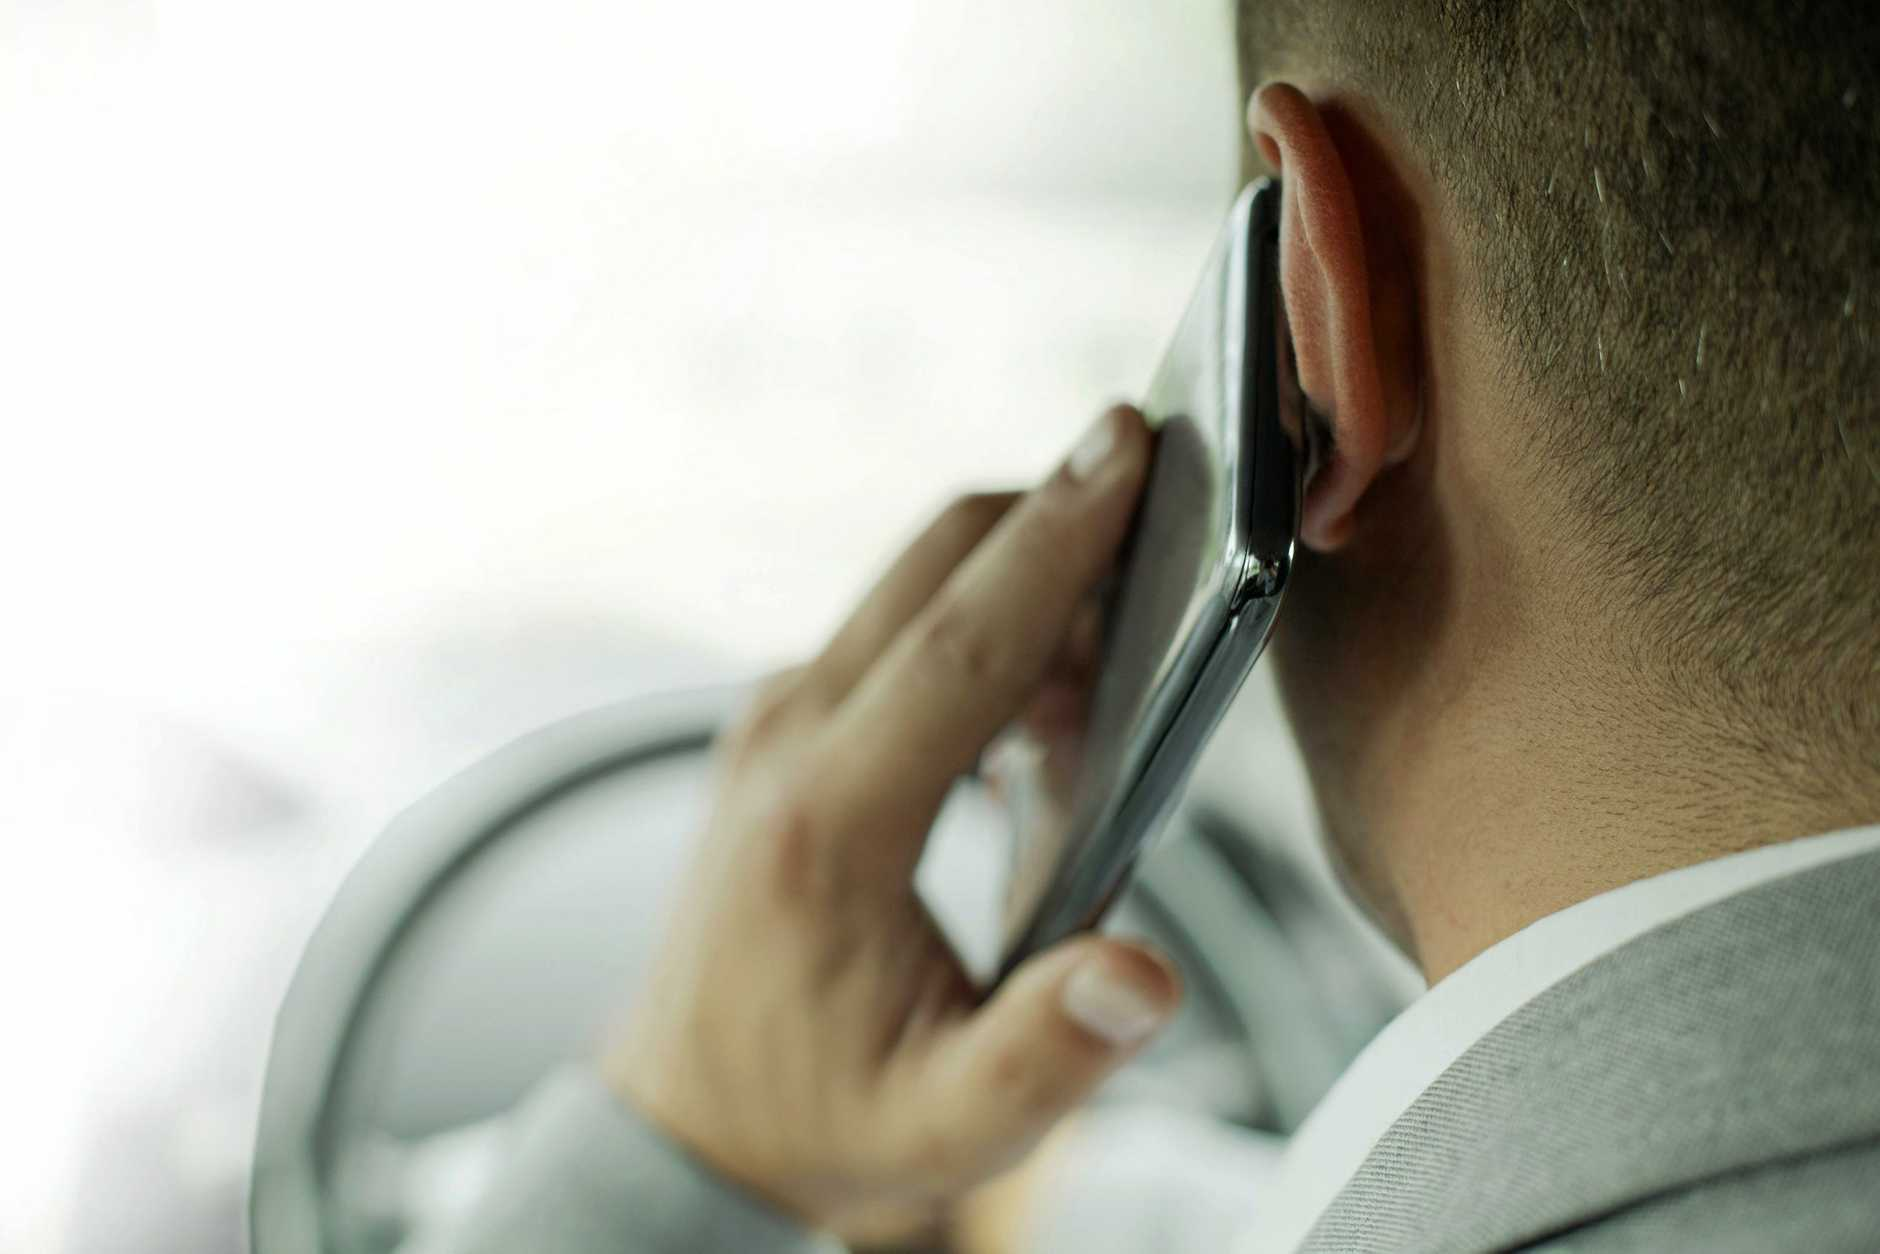 BUSTED: 23 people were fined $337 for using mobile phones while driving in the Tweed yesterday.